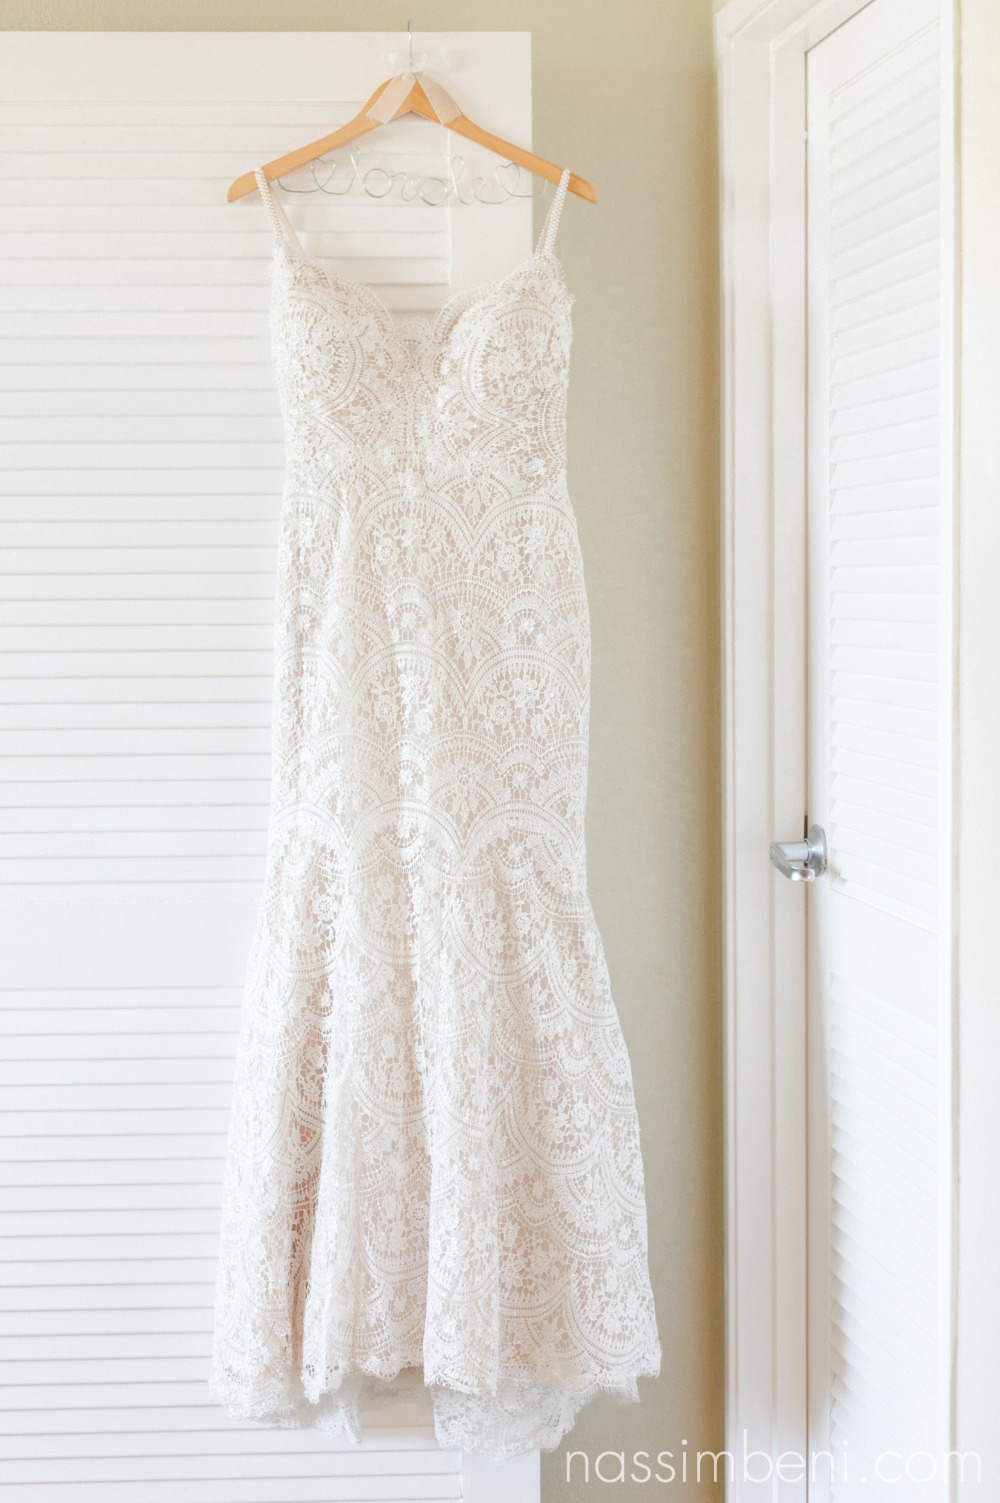 isabellas bridal gown in ivory for palm beach yacht wedding bride prep at palm beach shores resort by nassimbeni photography